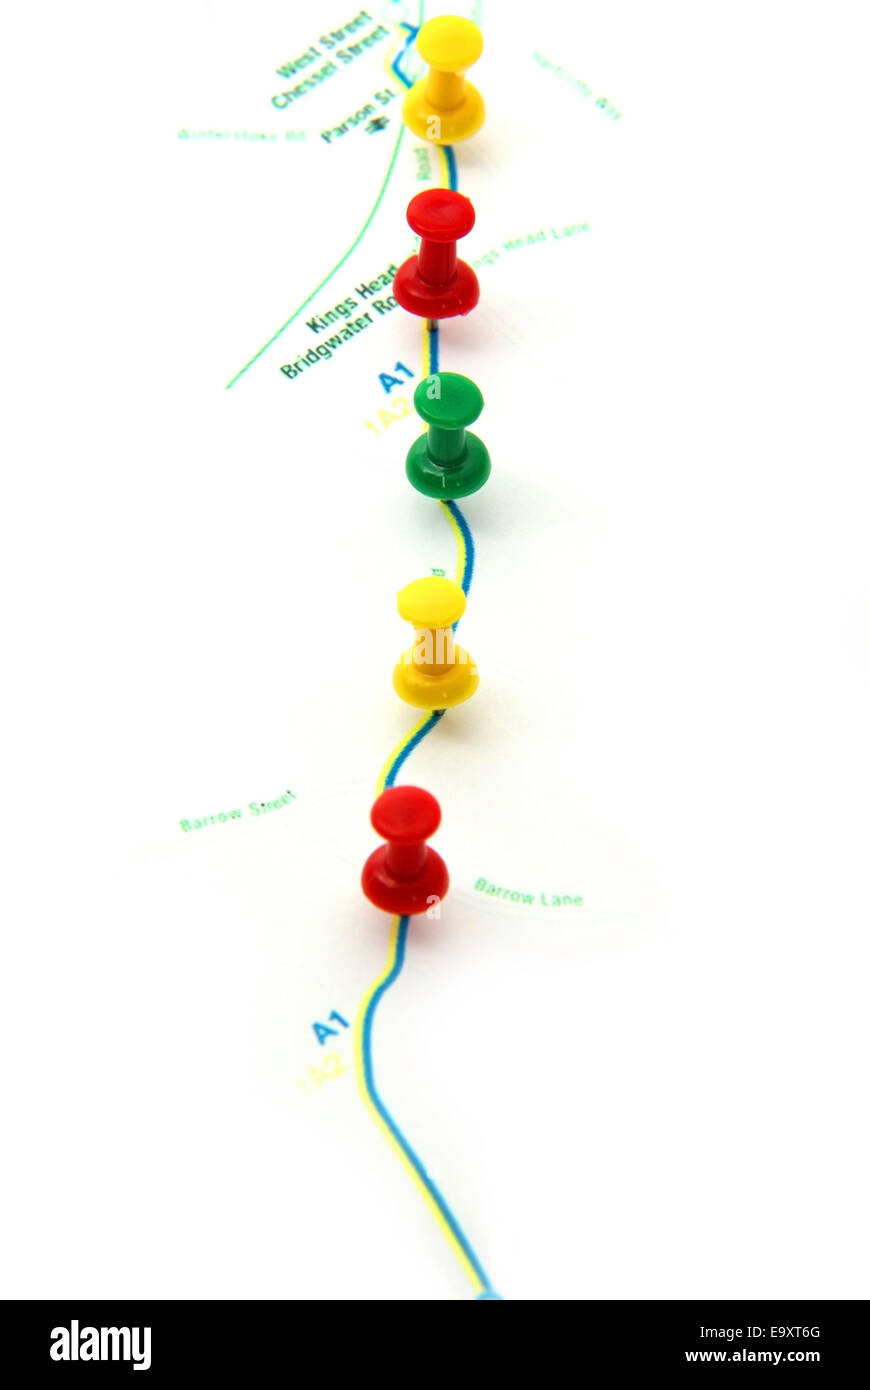 Route planning on map with pushpins. - Stock Image